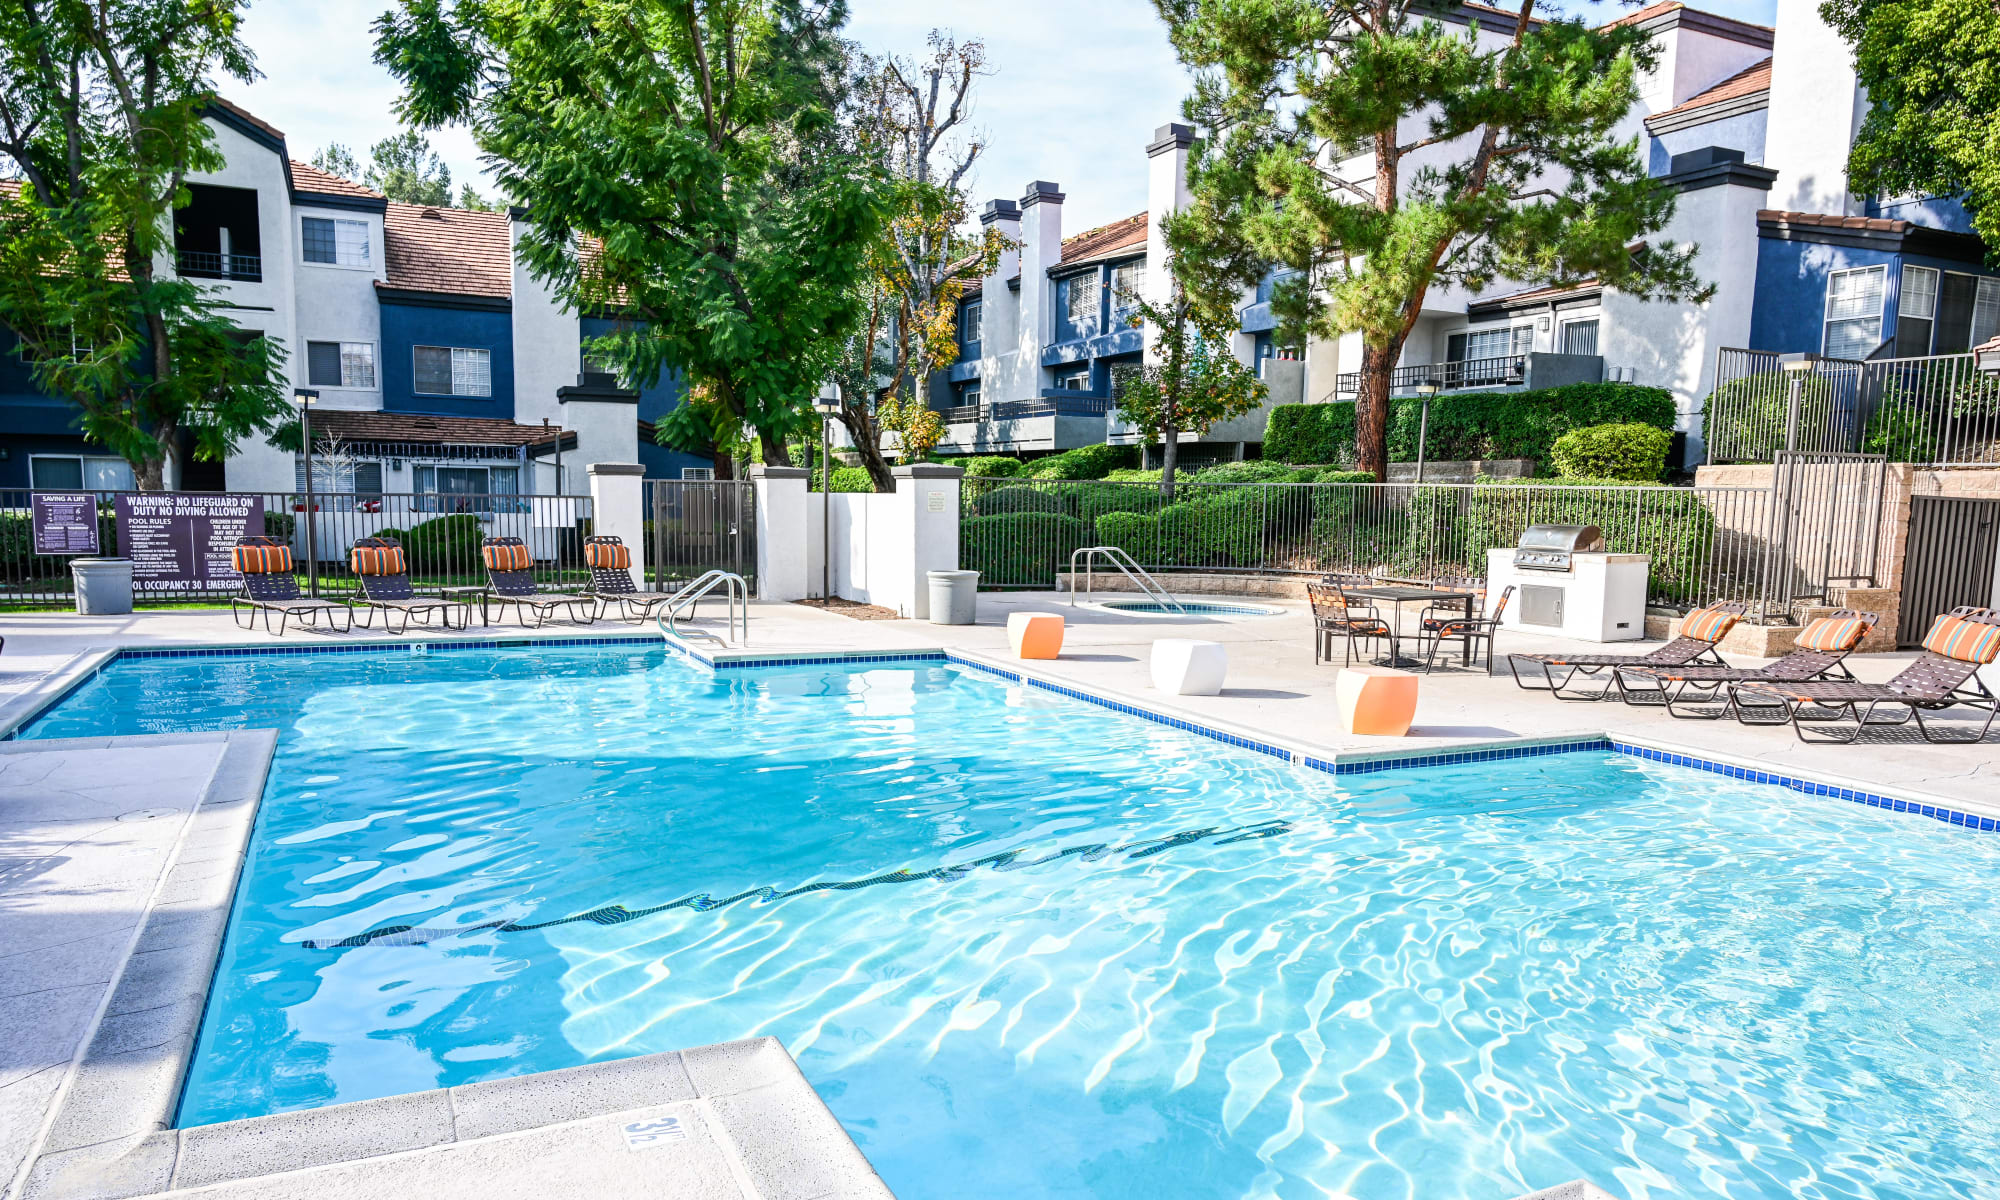 Contact us for more information at Sierra Heights Apartments, with Palm Trees in Rancho Cucamonga, California